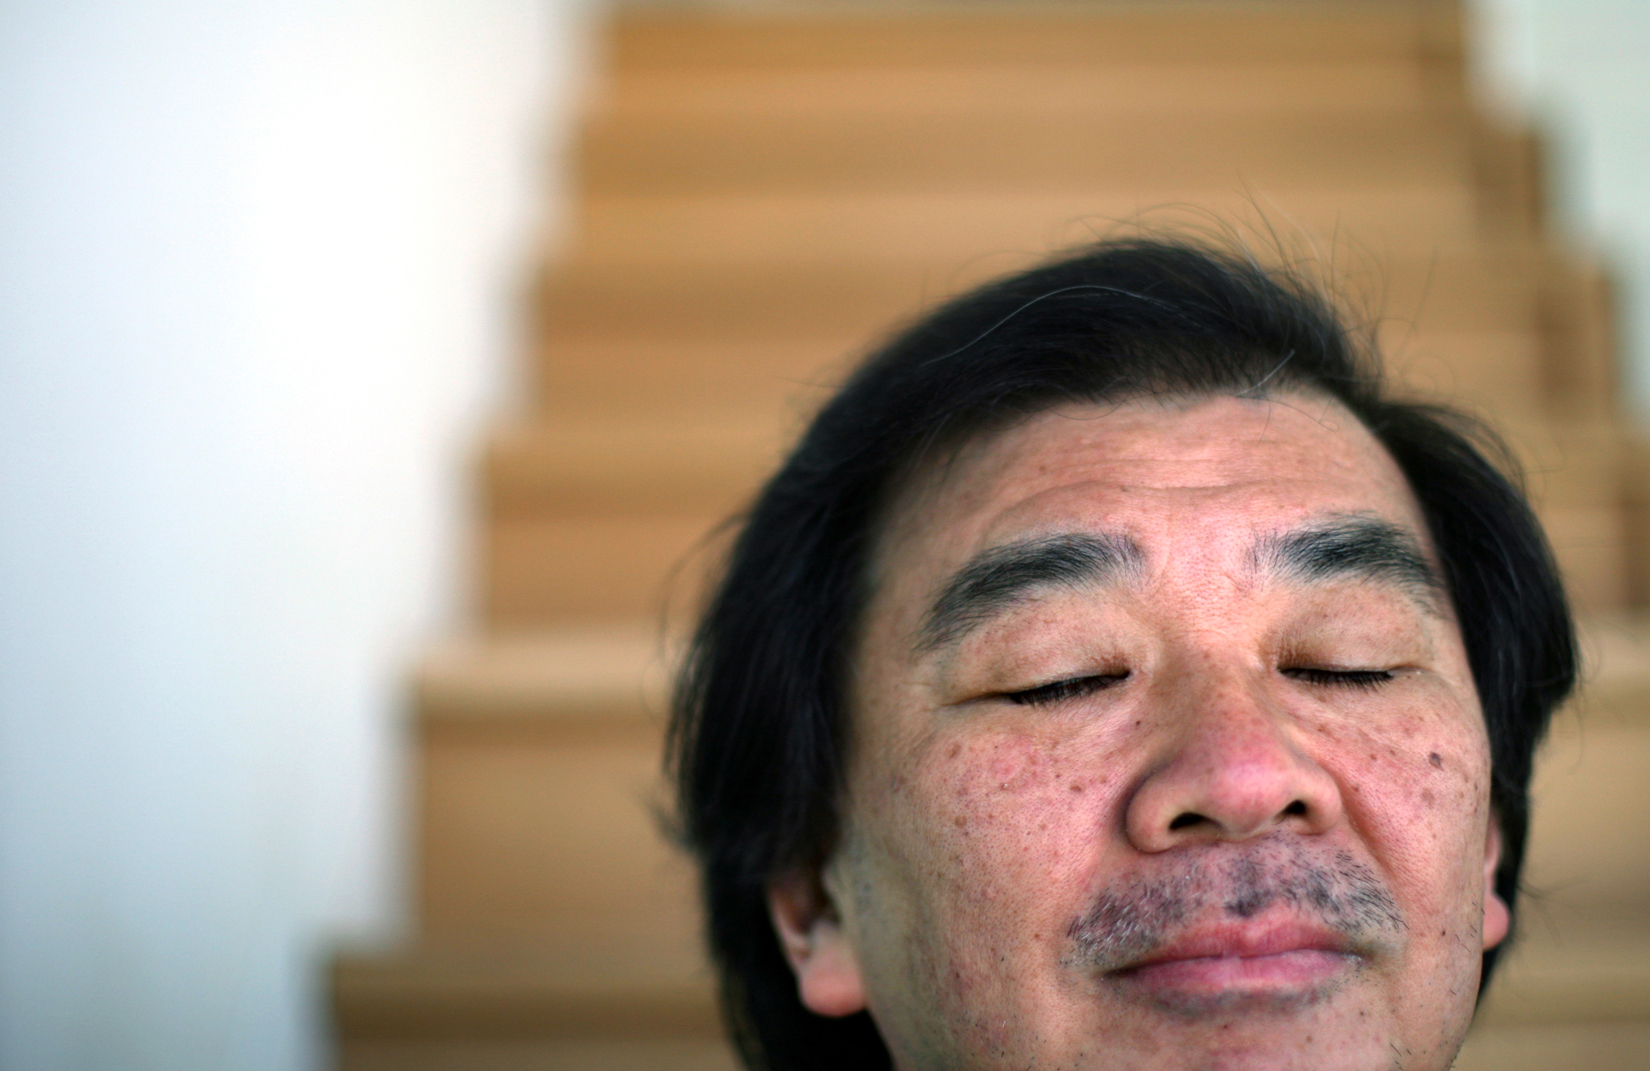 Pritzker Architecture Prize recipient Shigeru Ban poses for a portrait in Manhattan, NY.(For The New York Times)